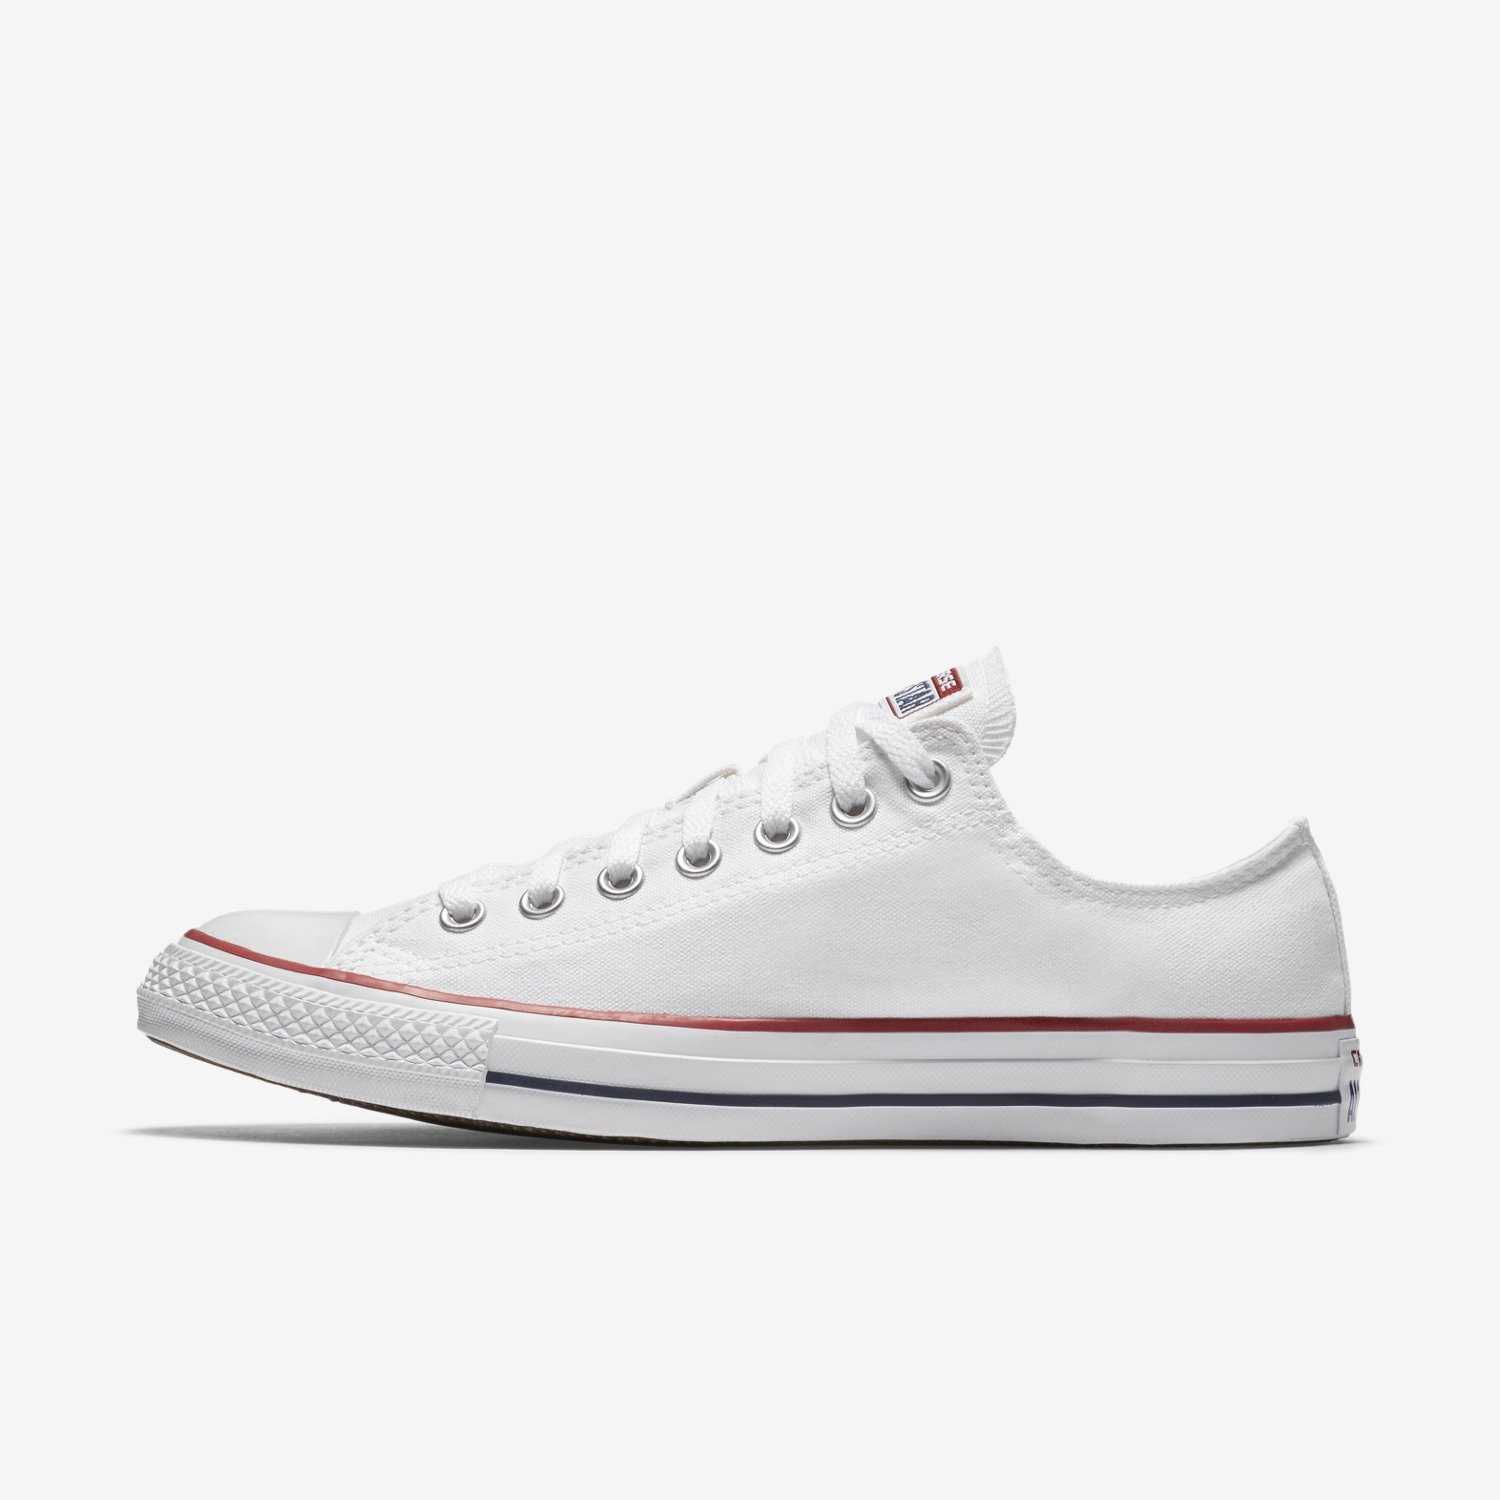 900674bbdb8 Converse Chuck Taylor   Buy Discount Shoes from Asics and Converse ...